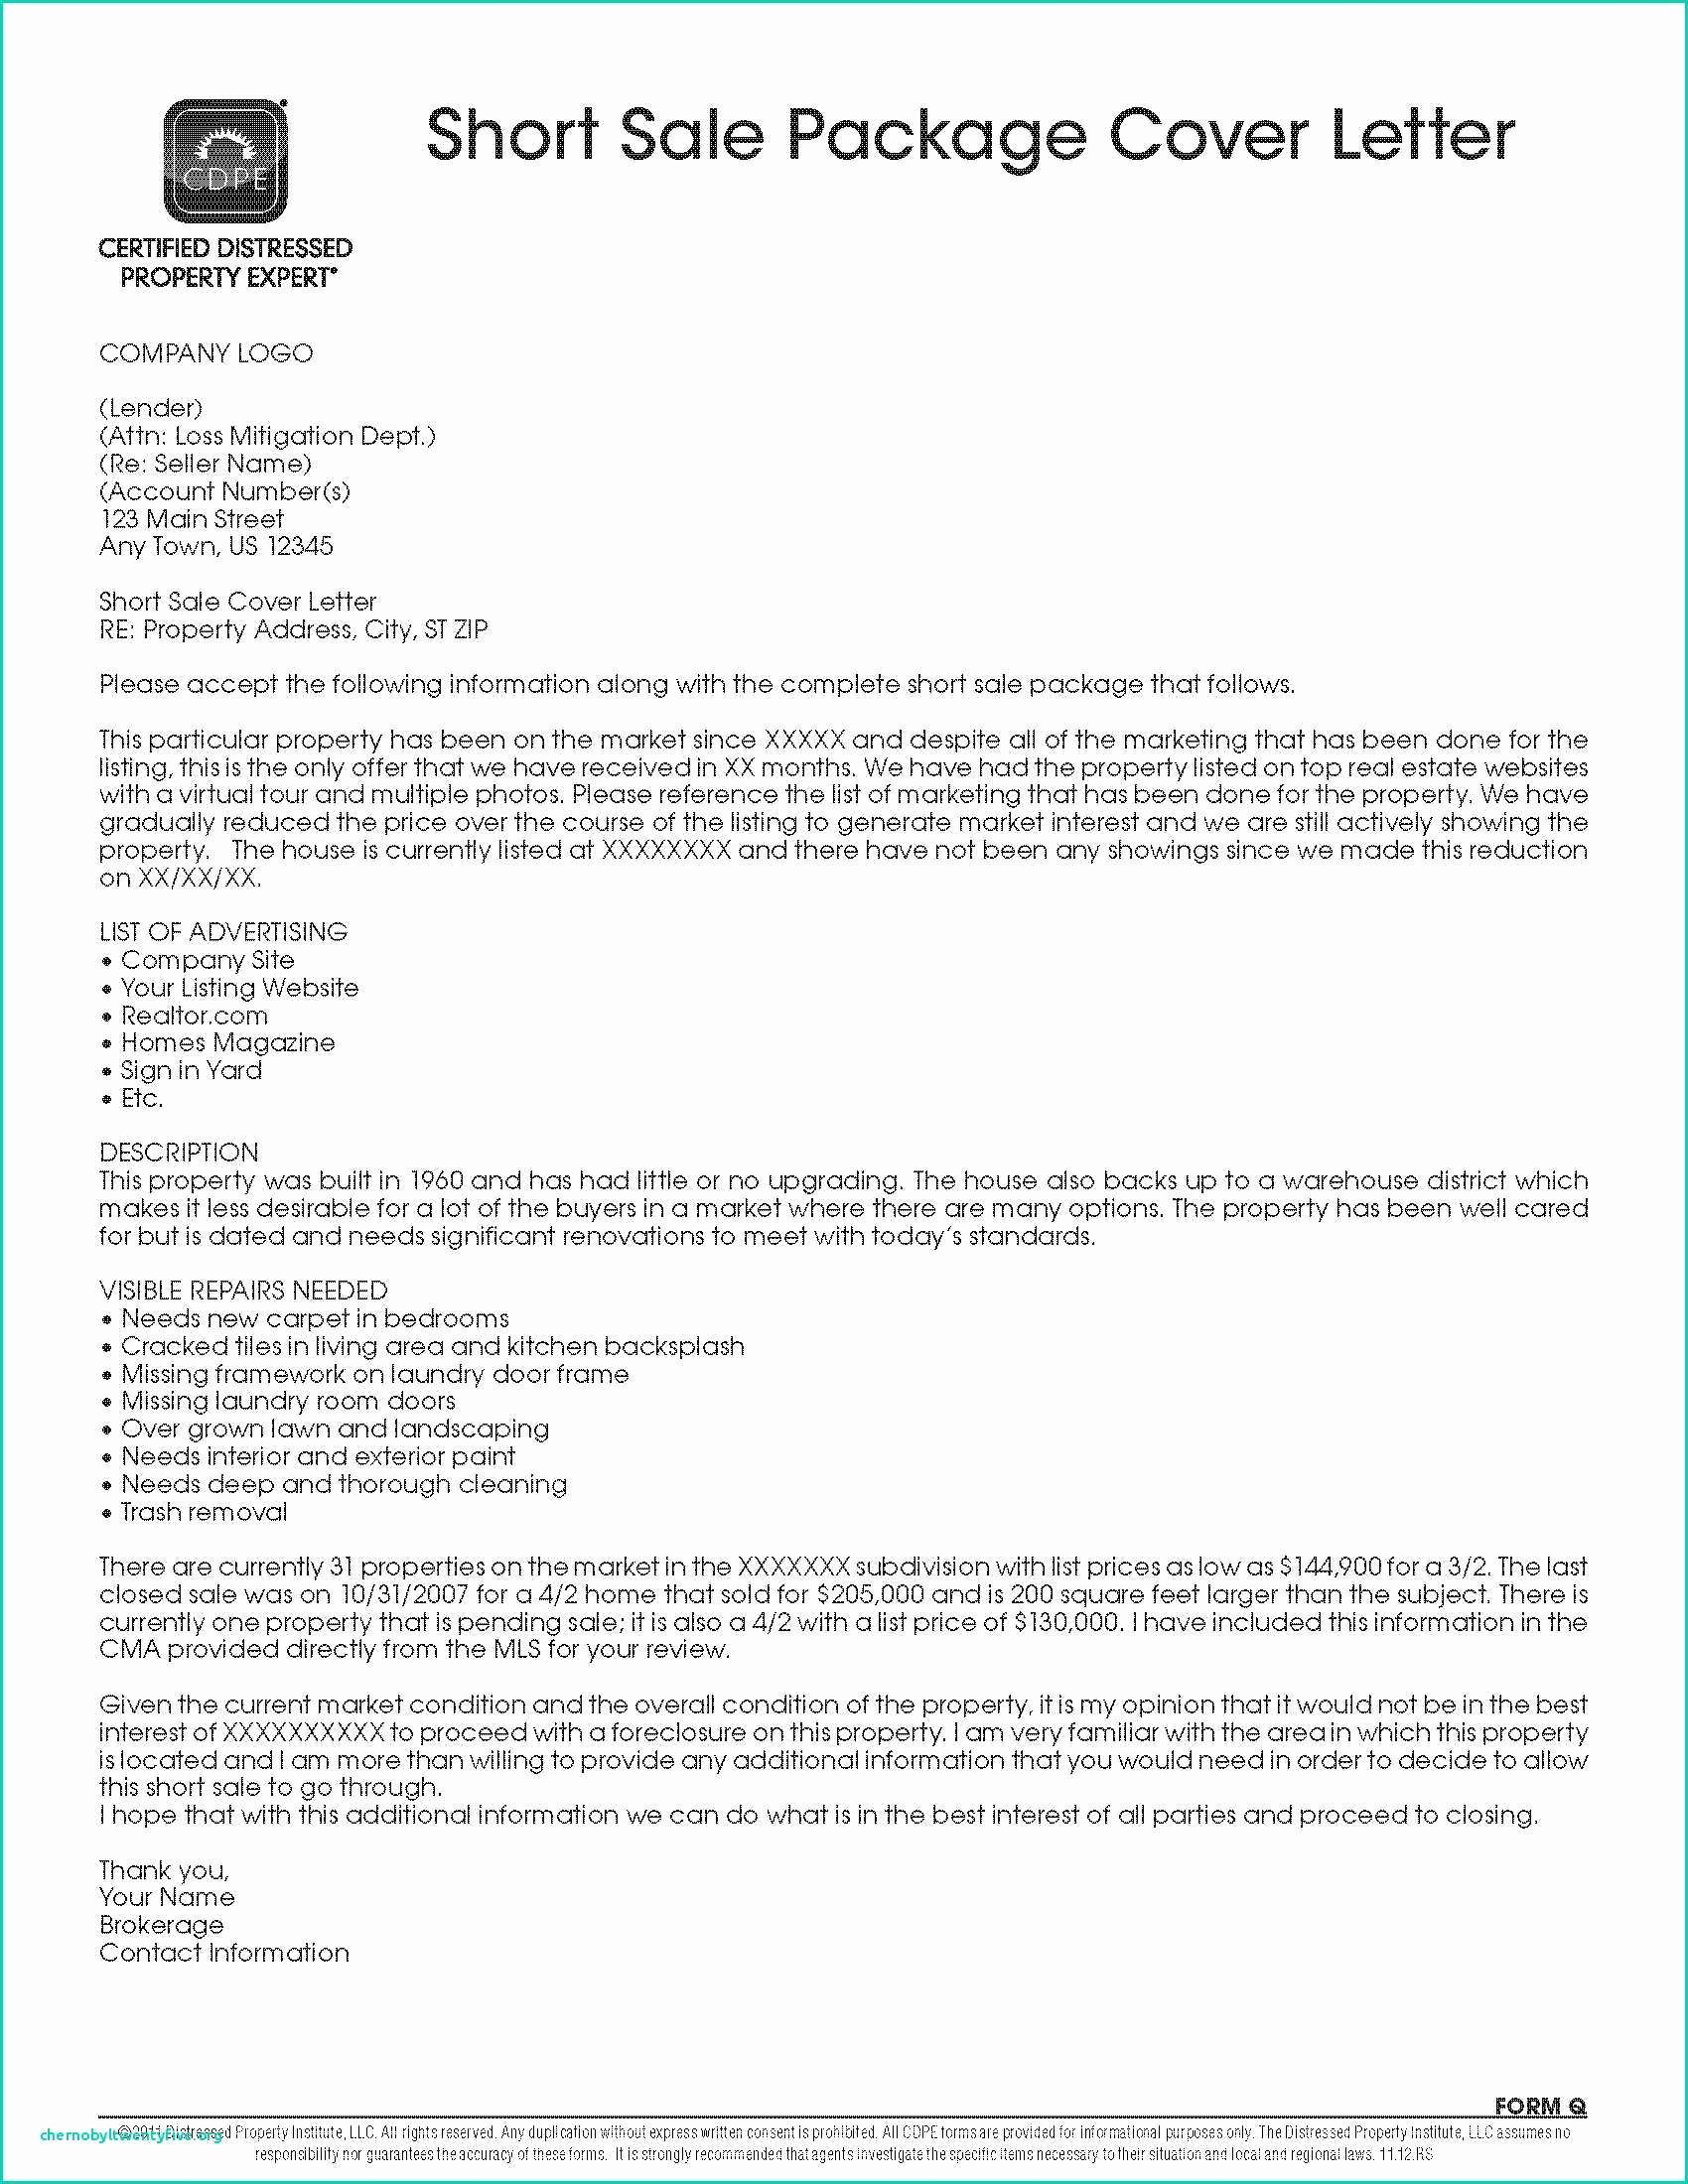 Personal assistant Cover Letter Luxury 12 13 Personal assistant Cover Letter Samples